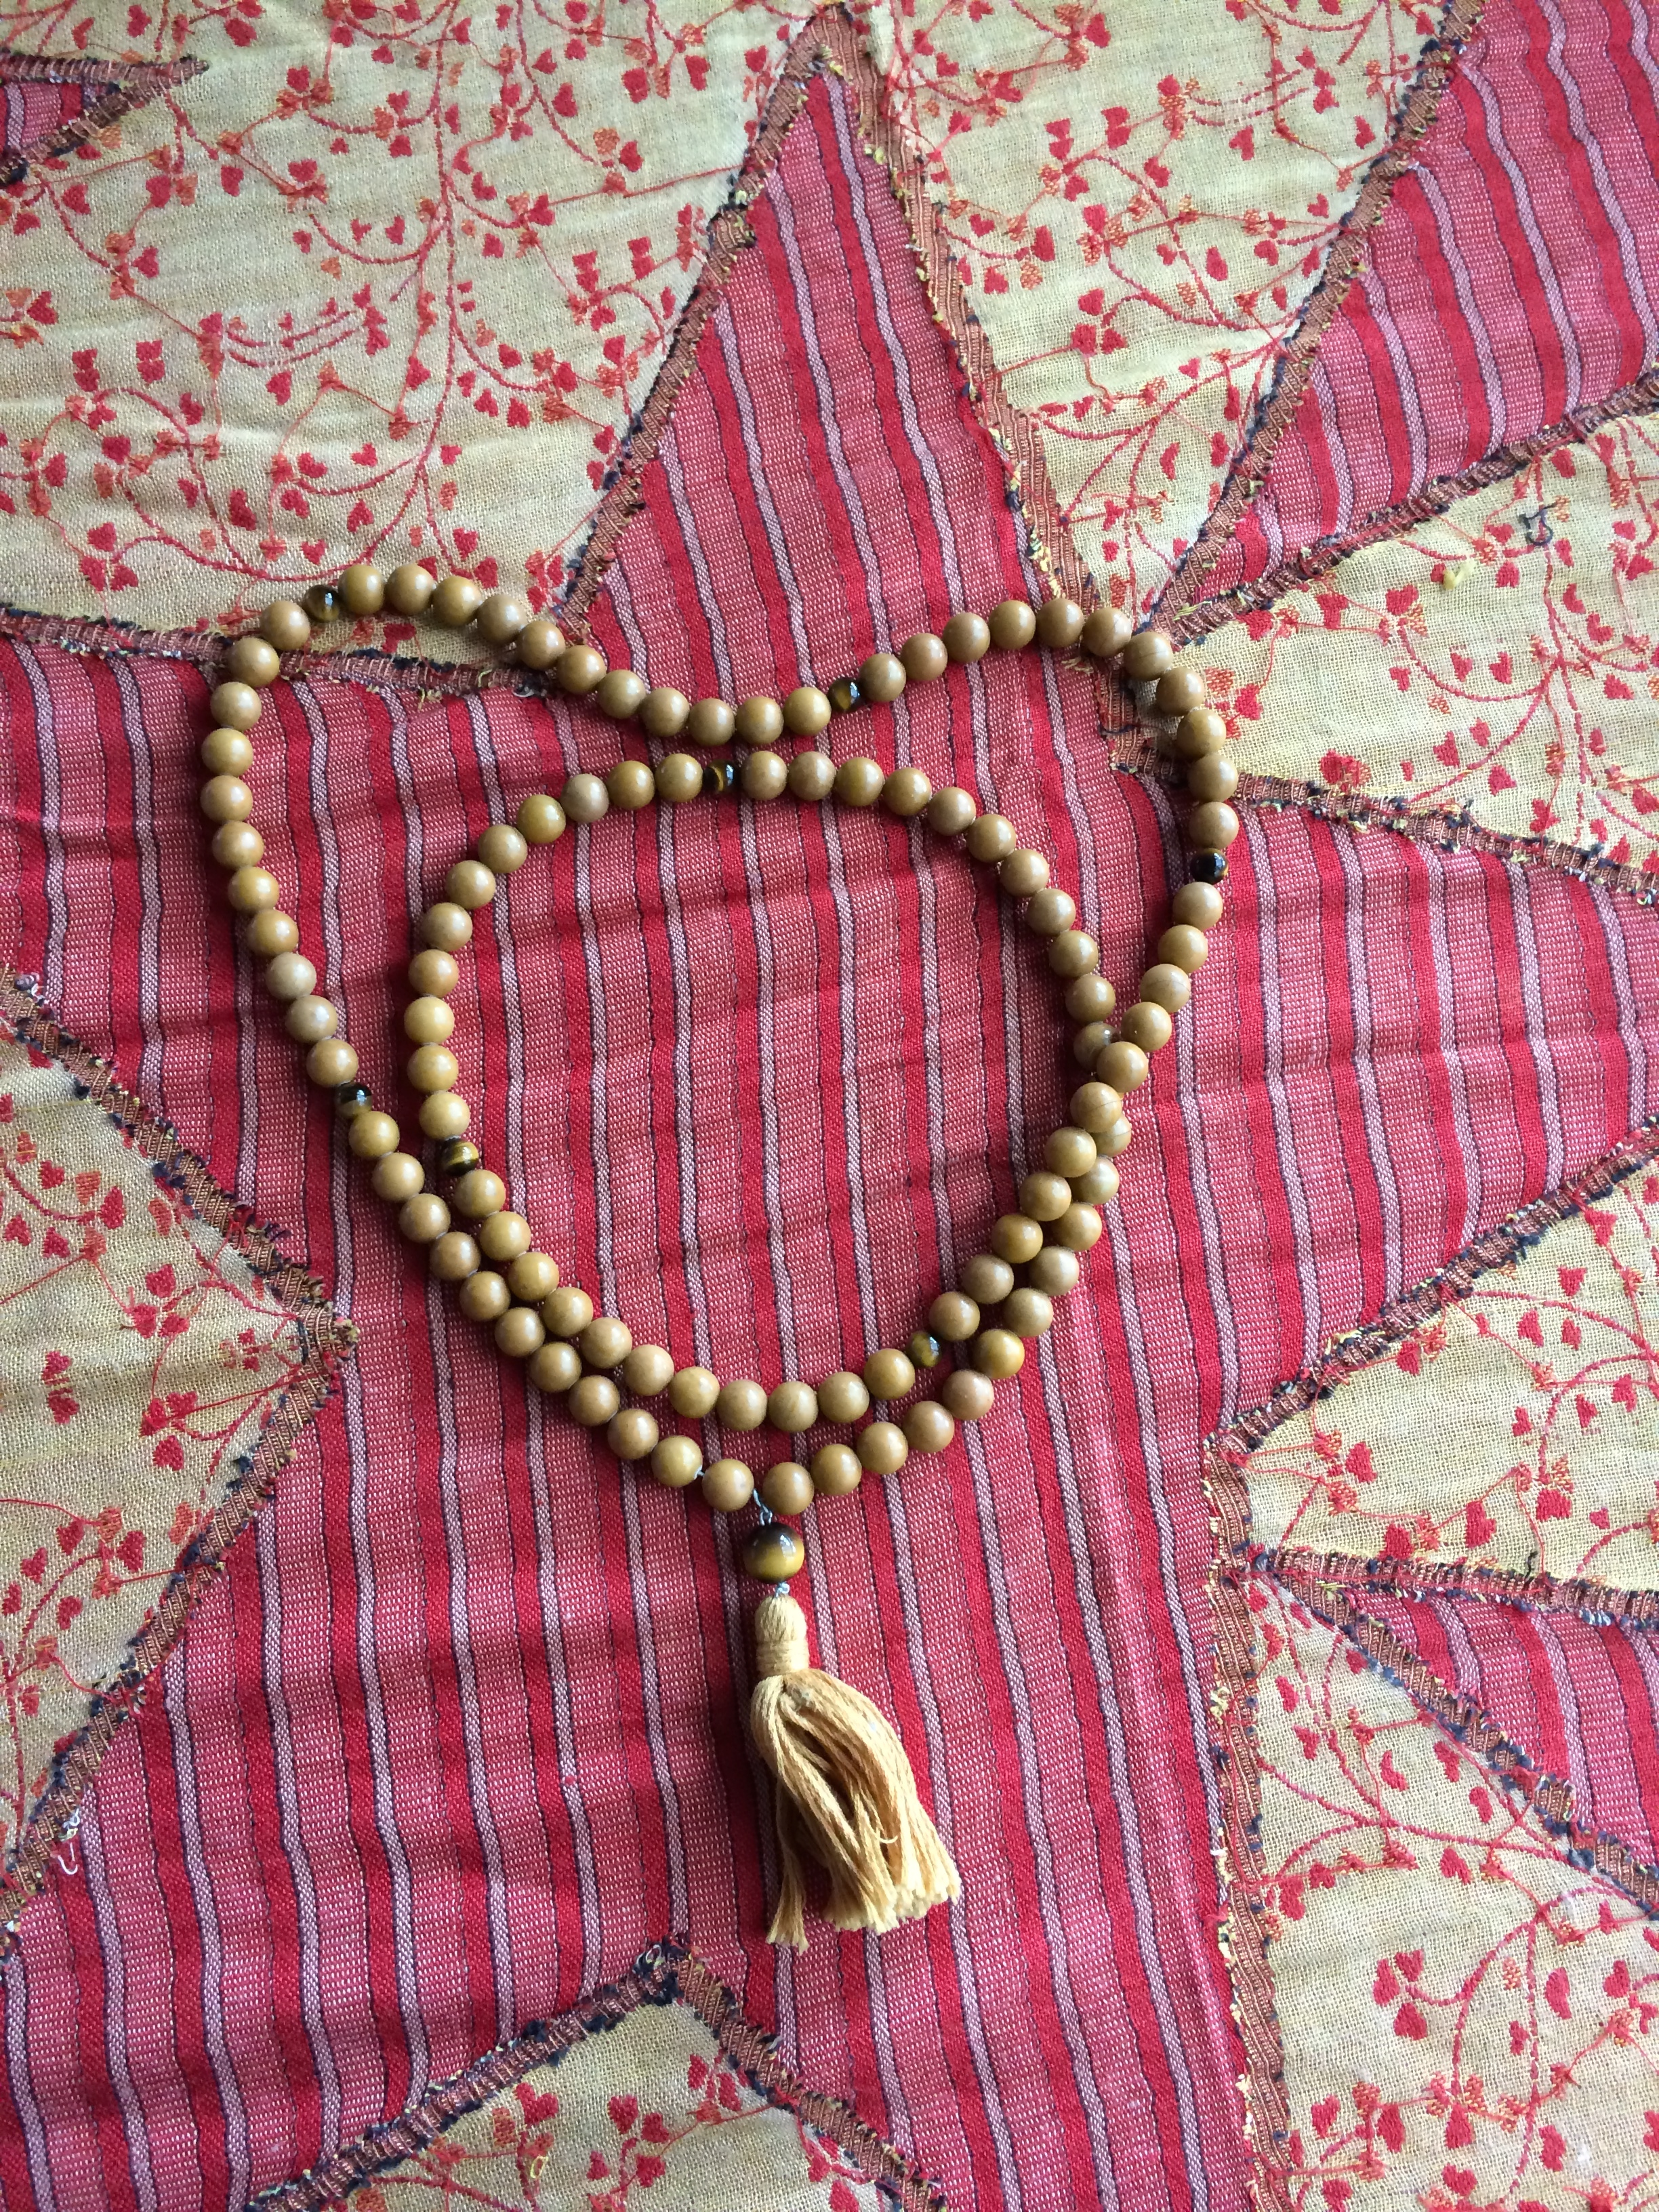 These beautiful japa mala beads are yellow jade and tigers eye - as worn by Buddhist monks  - a gift to Min from Rick and Lindy Butler.